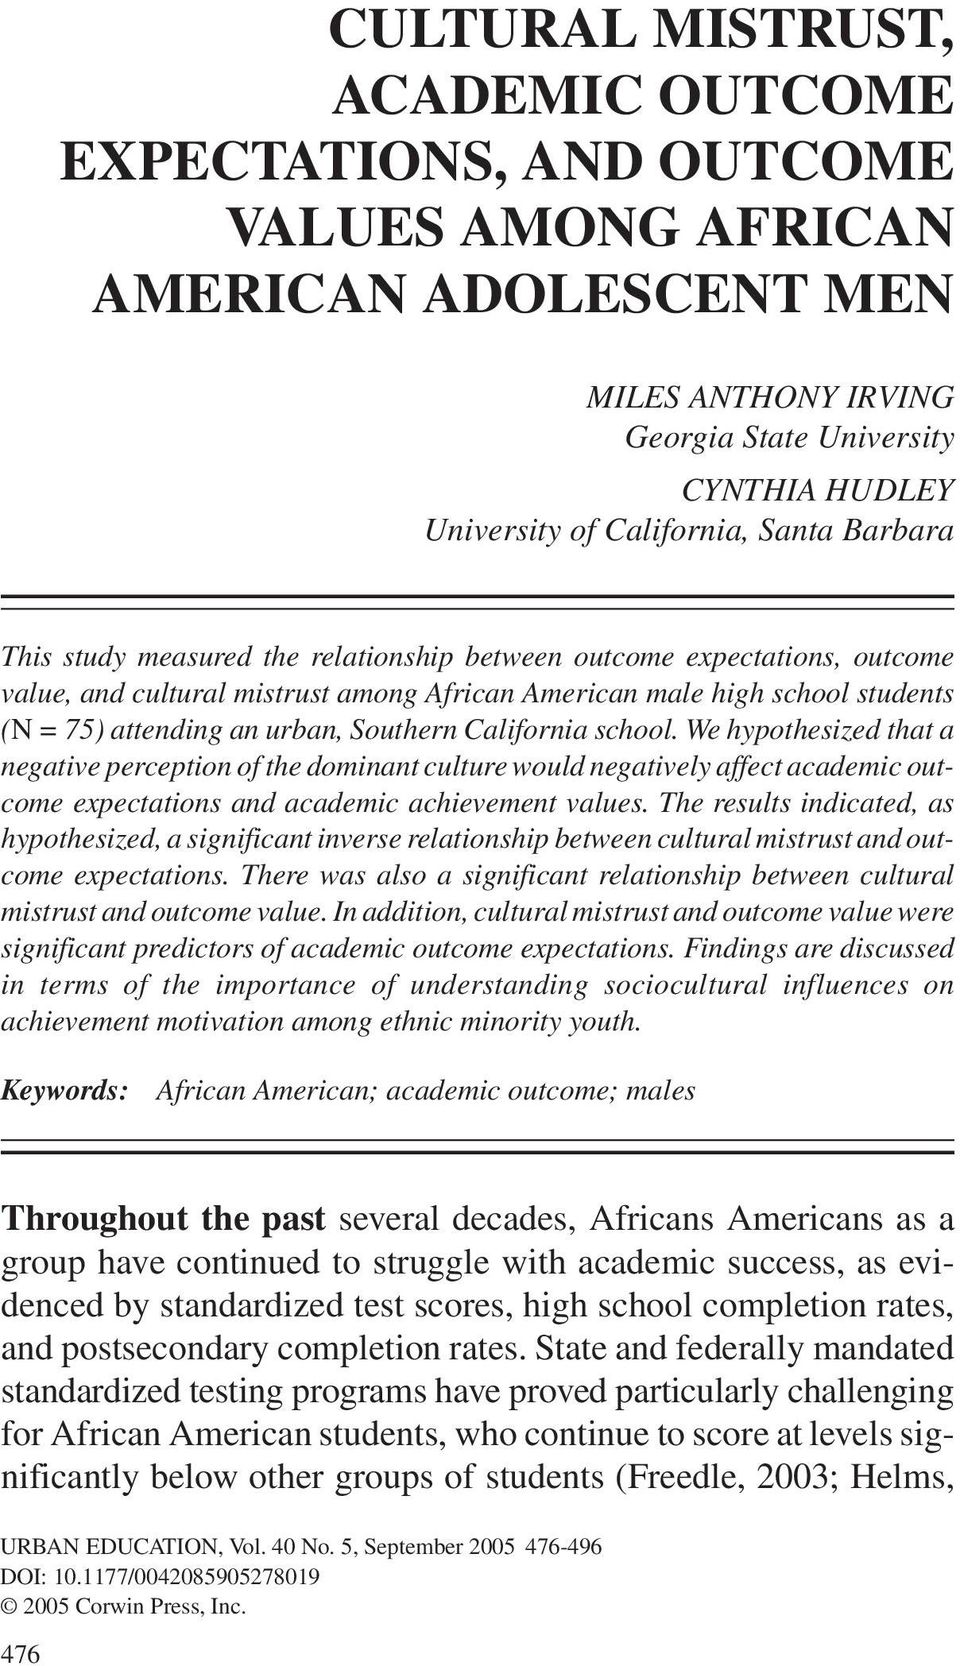 value, and cultural mistrust among African American male high school students (N = 75) attending an urban, Southern California school.